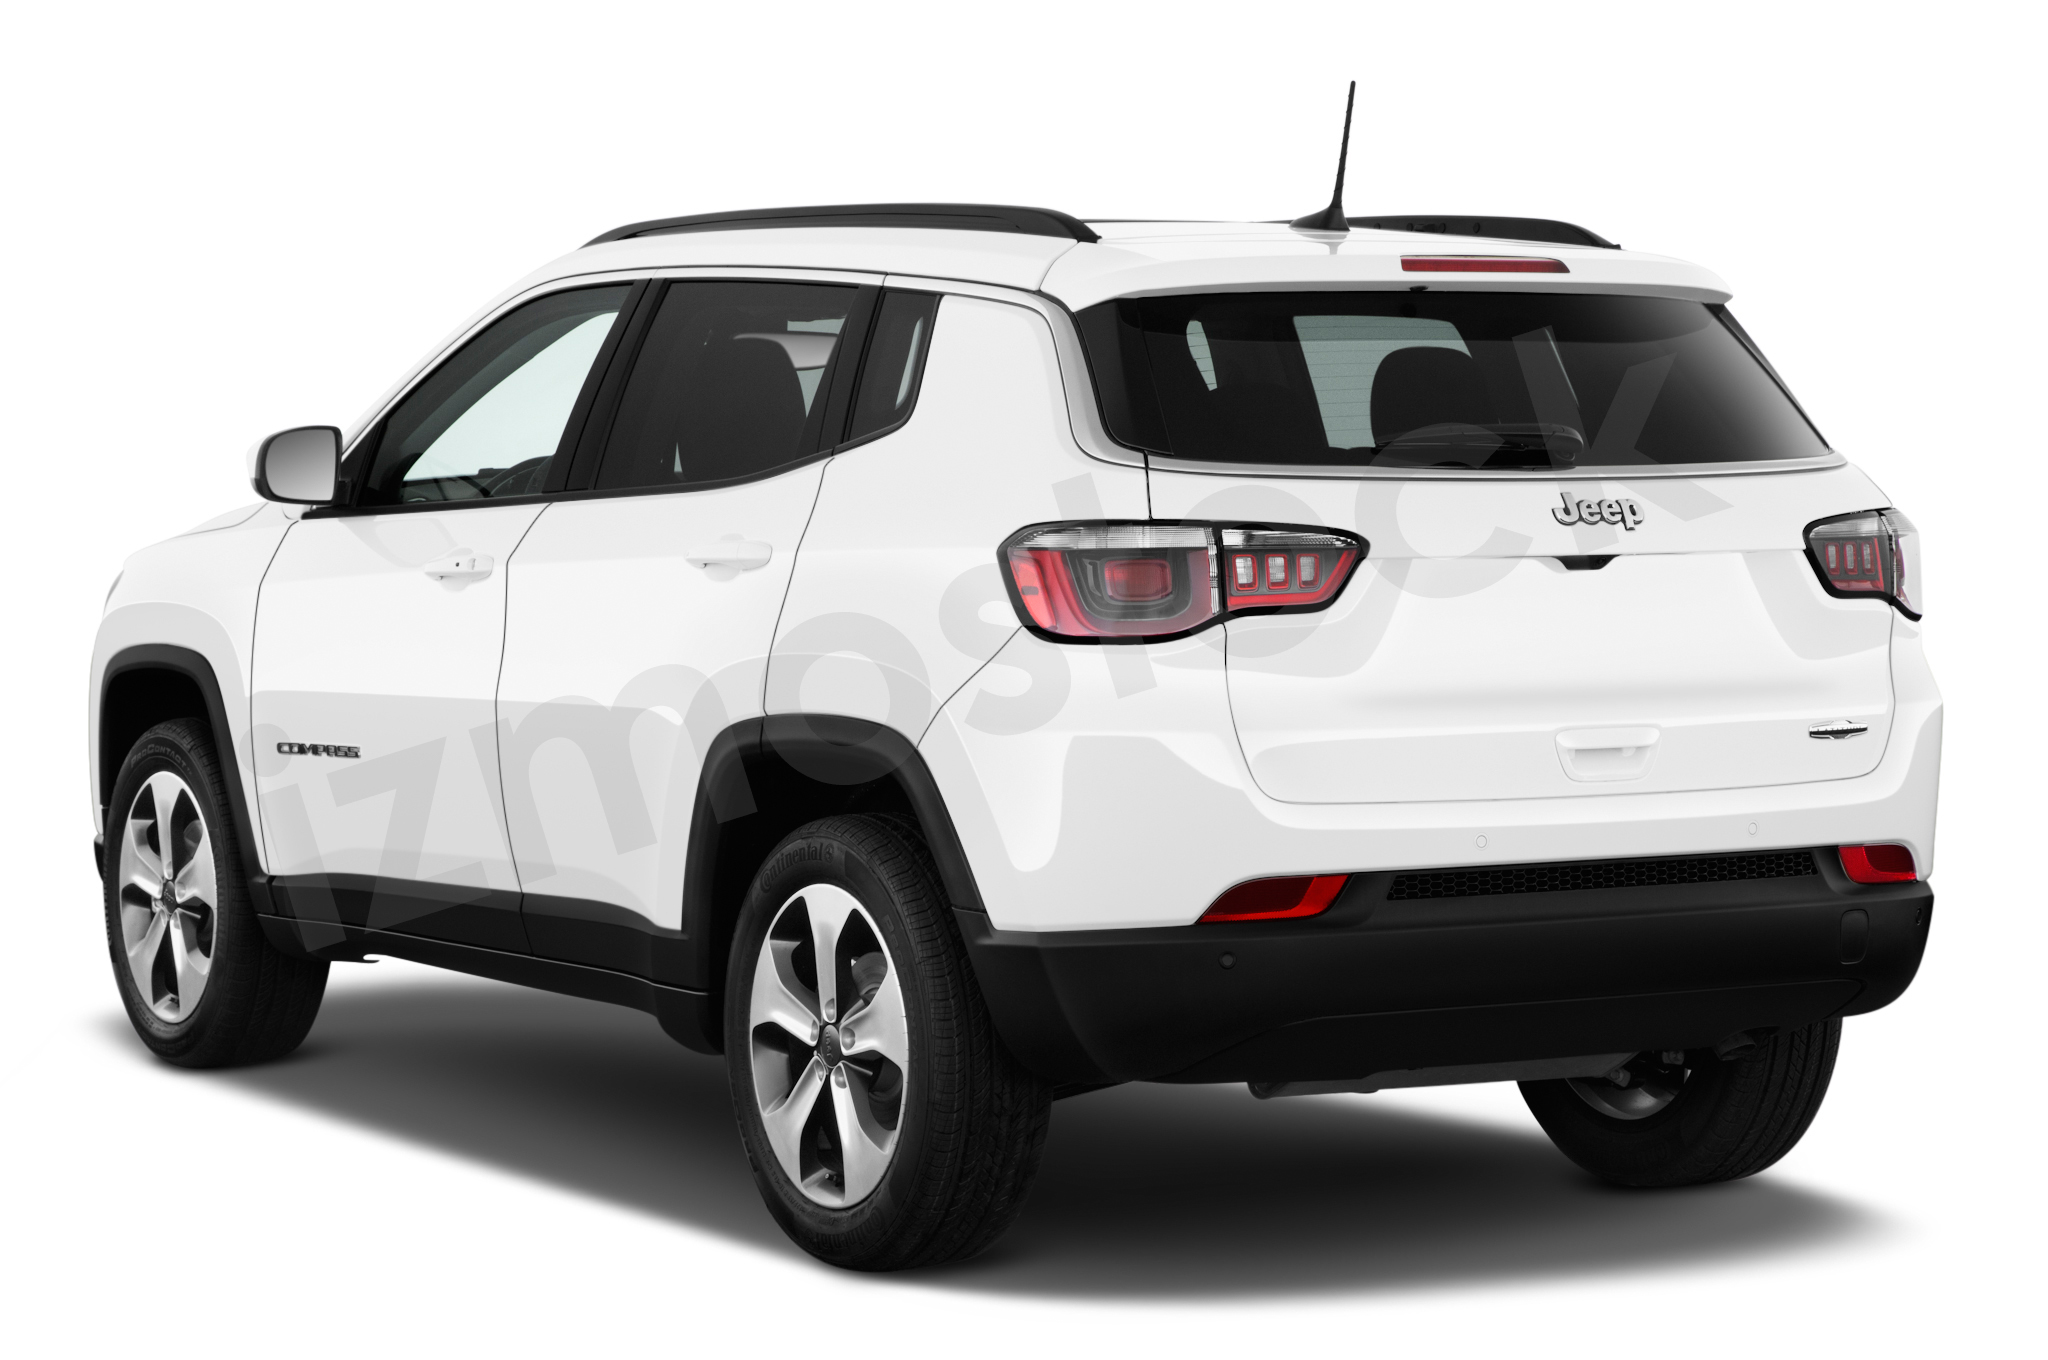 Jeep Grand Cherokee White 2017 >> Jeep Compass 2017 Review, Photos, Price, Interior Video and Specs